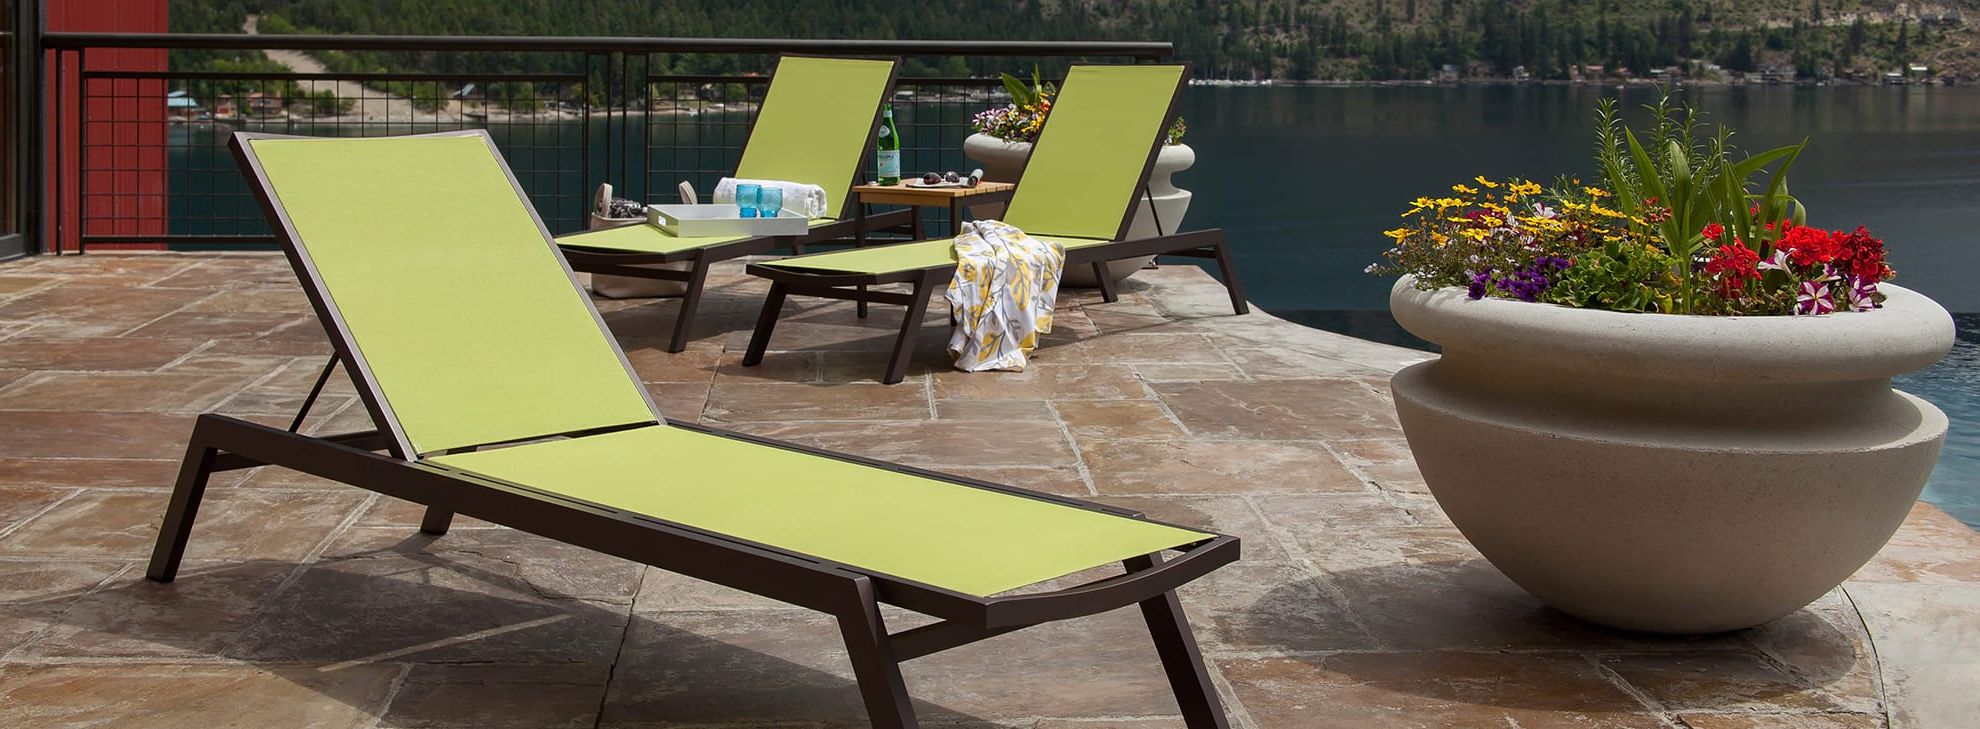 Polywood® Official Store Intended For Wood Blue And White Cushion Outdoor Chaise Lounge Chairs (View 16 of 25)